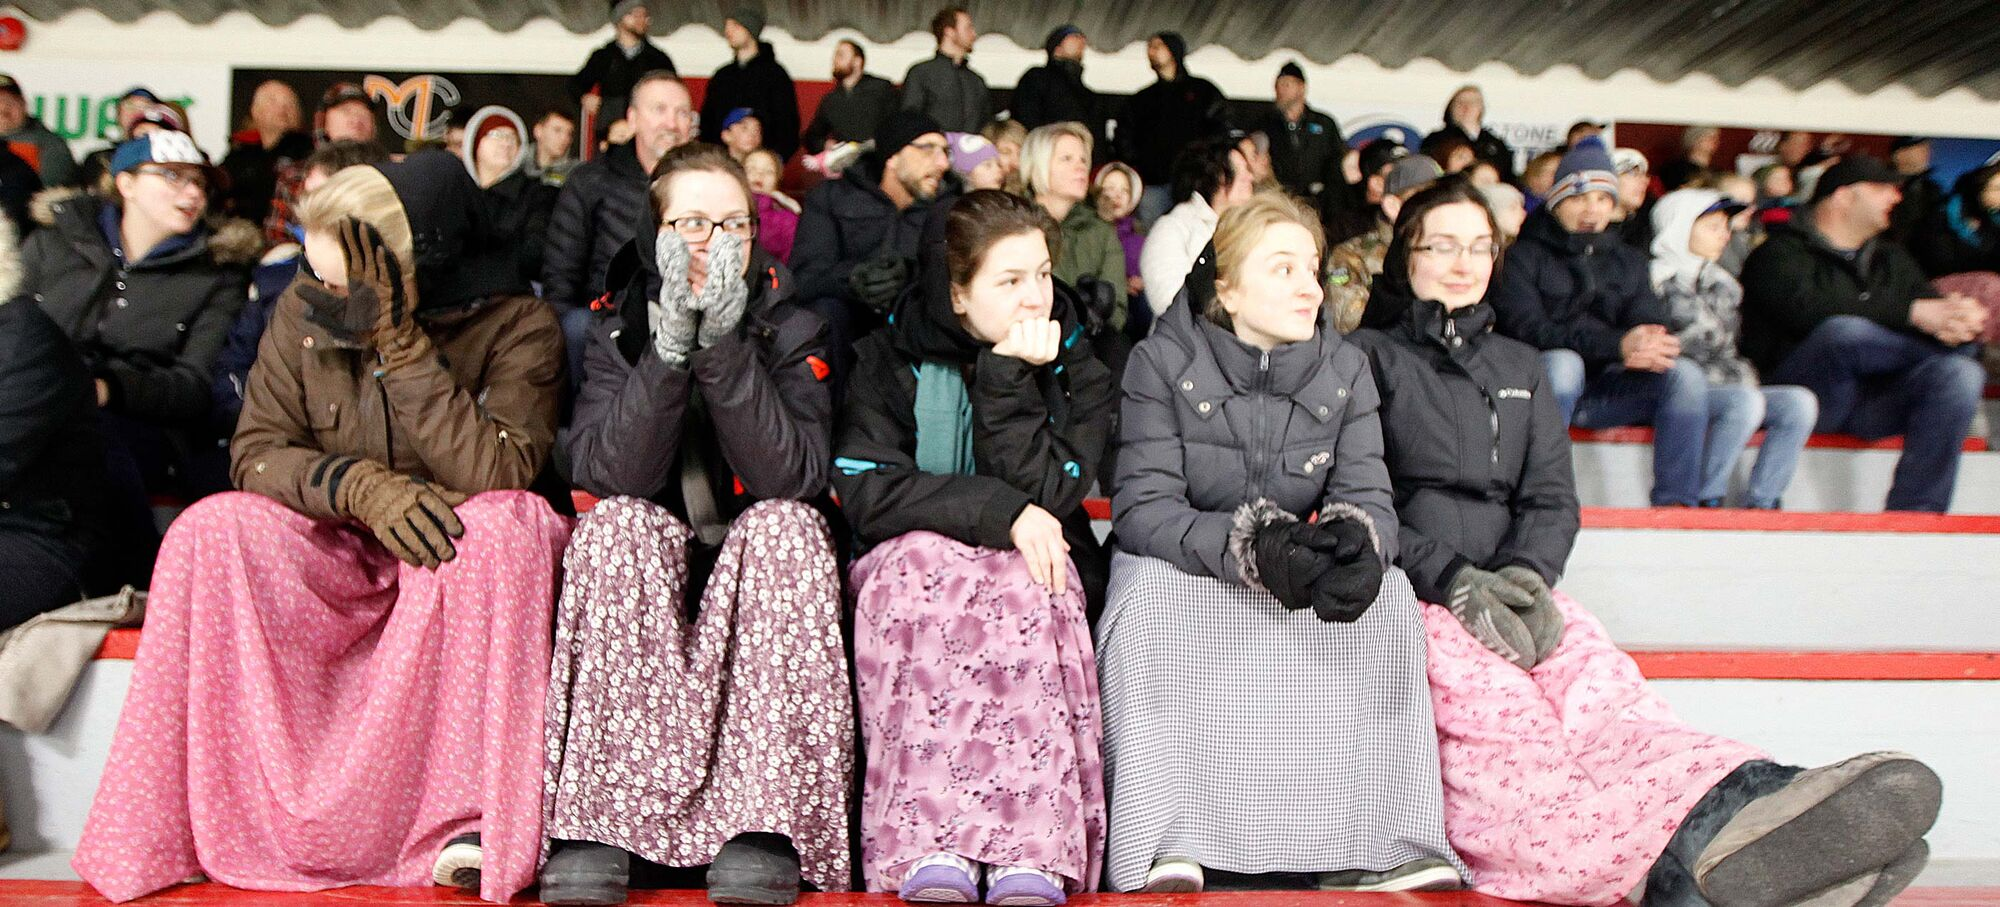 The team enjoys overwhelming support from fans, both Hutterite and outsiders alike. (Phil Hossack / Winnipeg Free Press)